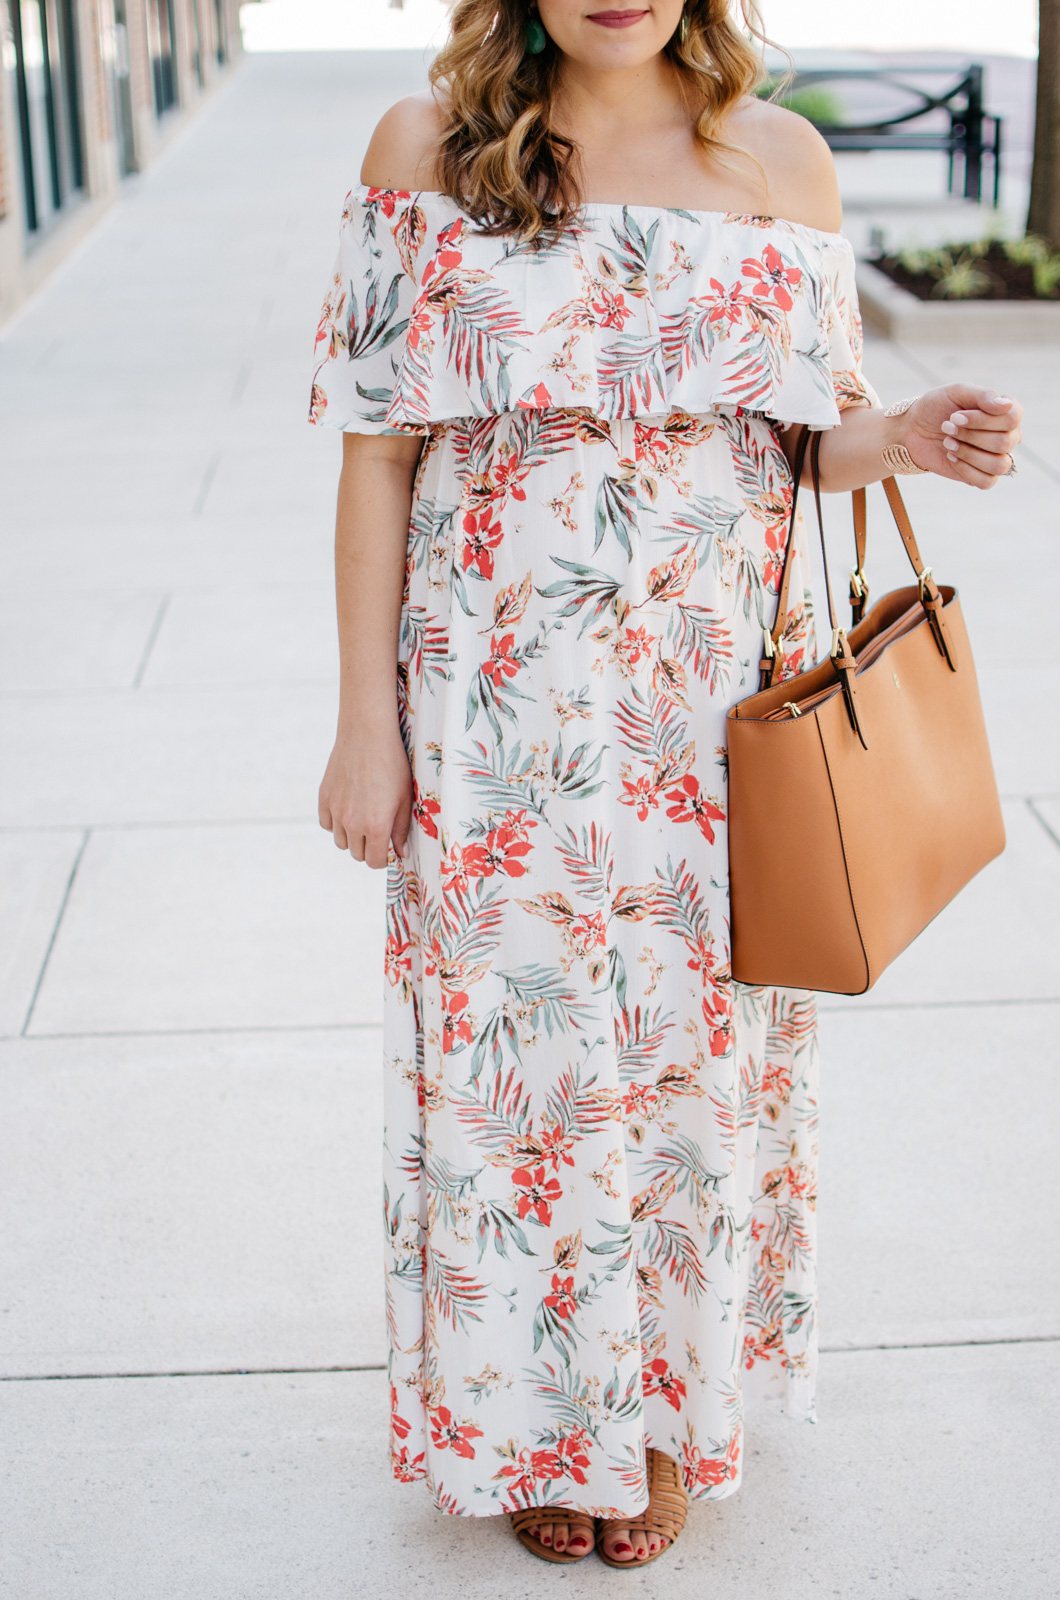 bump outfits - palm print maxi | For more cute pregnancy outfits, head to bylaurenm.com!